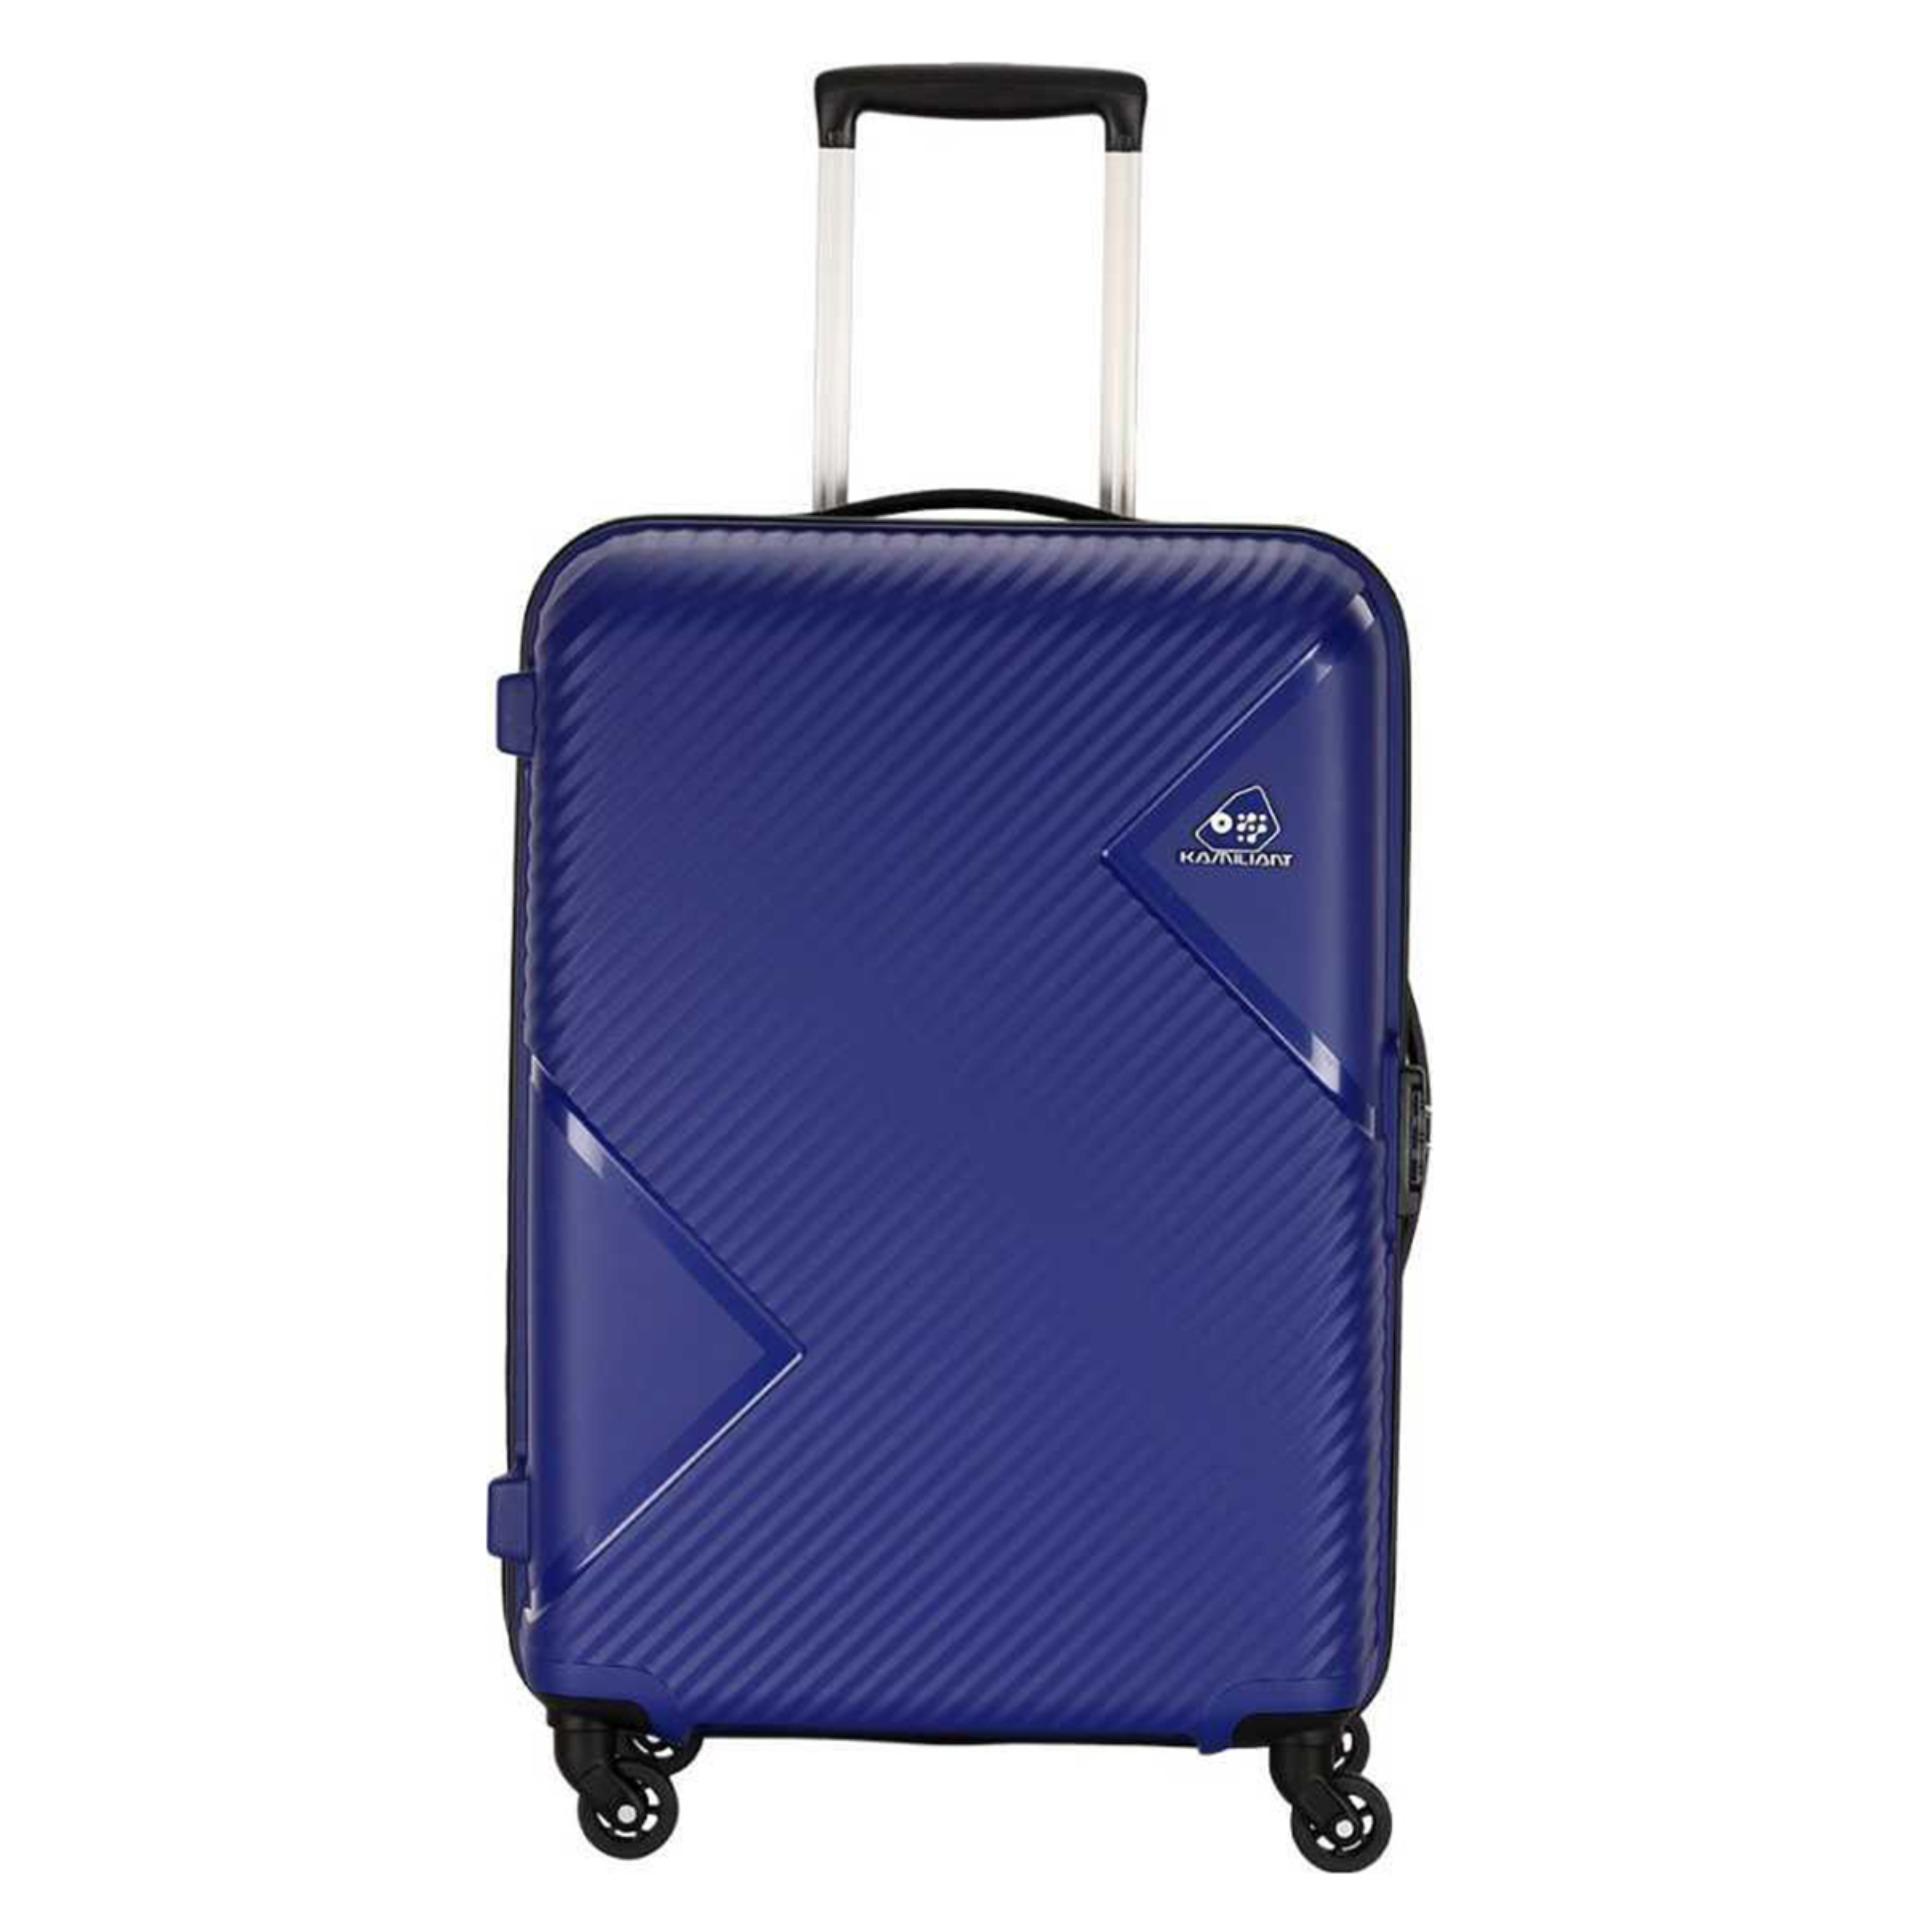 a61a4909af25 Luggage Shop: Carry-On Bags & Suitcases Online in Pakistan - Daraz.pk